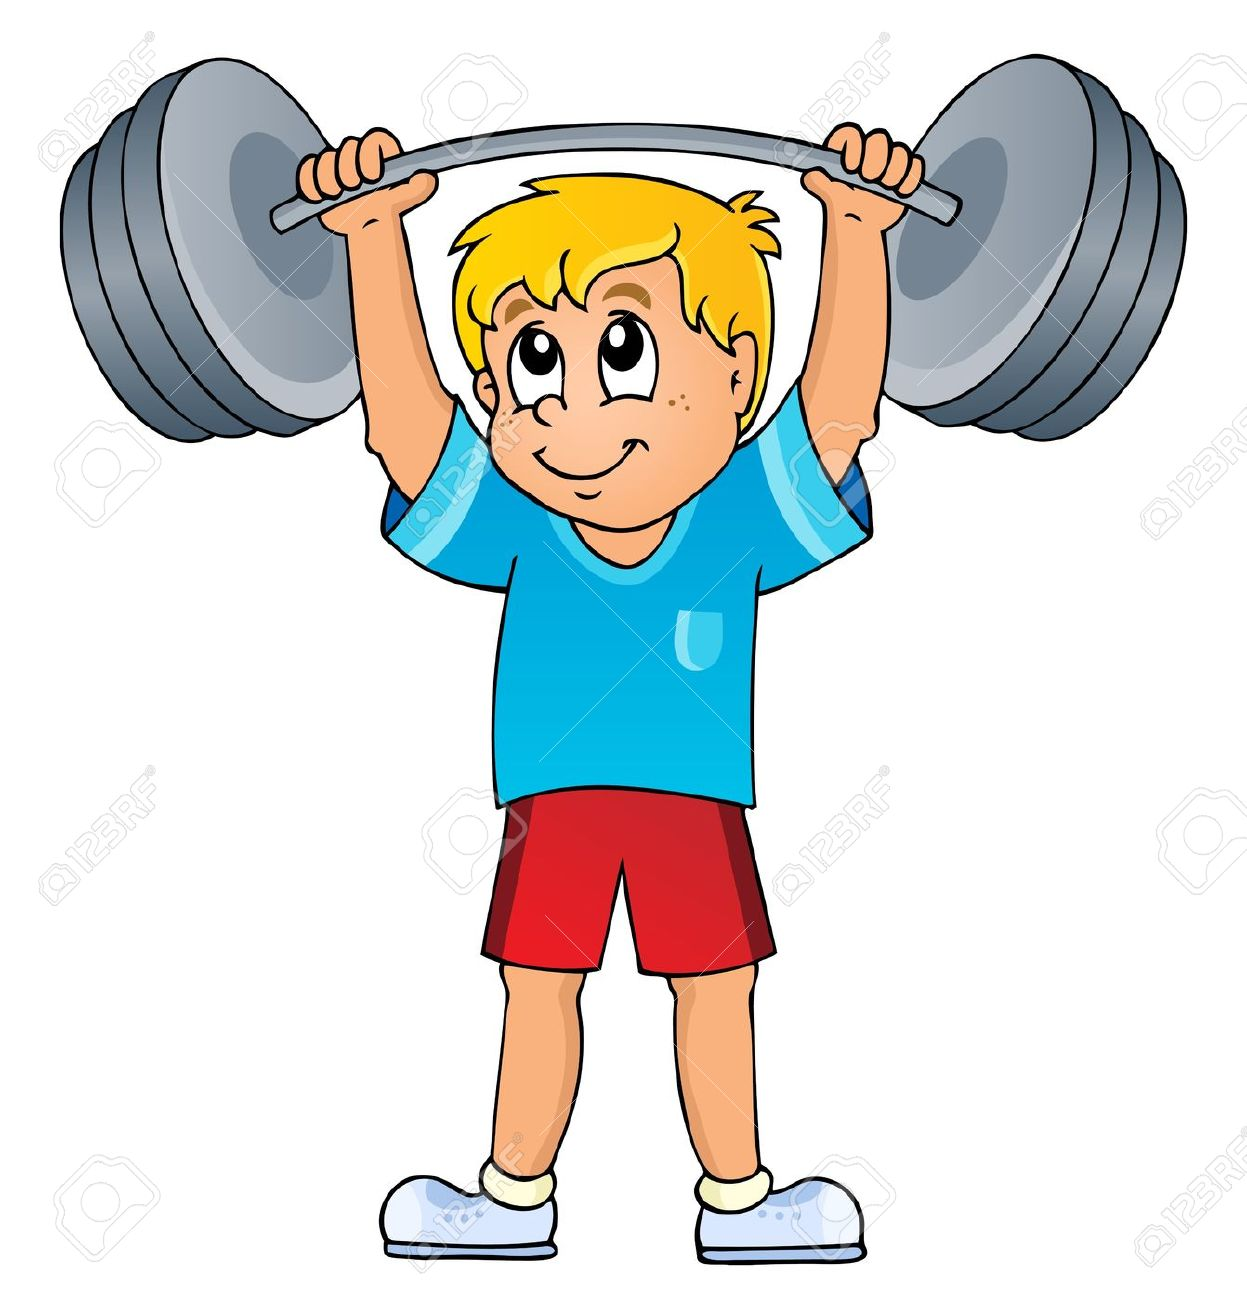 Weight Lifting: Sport And Gym .-weight lifting: Sport and gym .-14